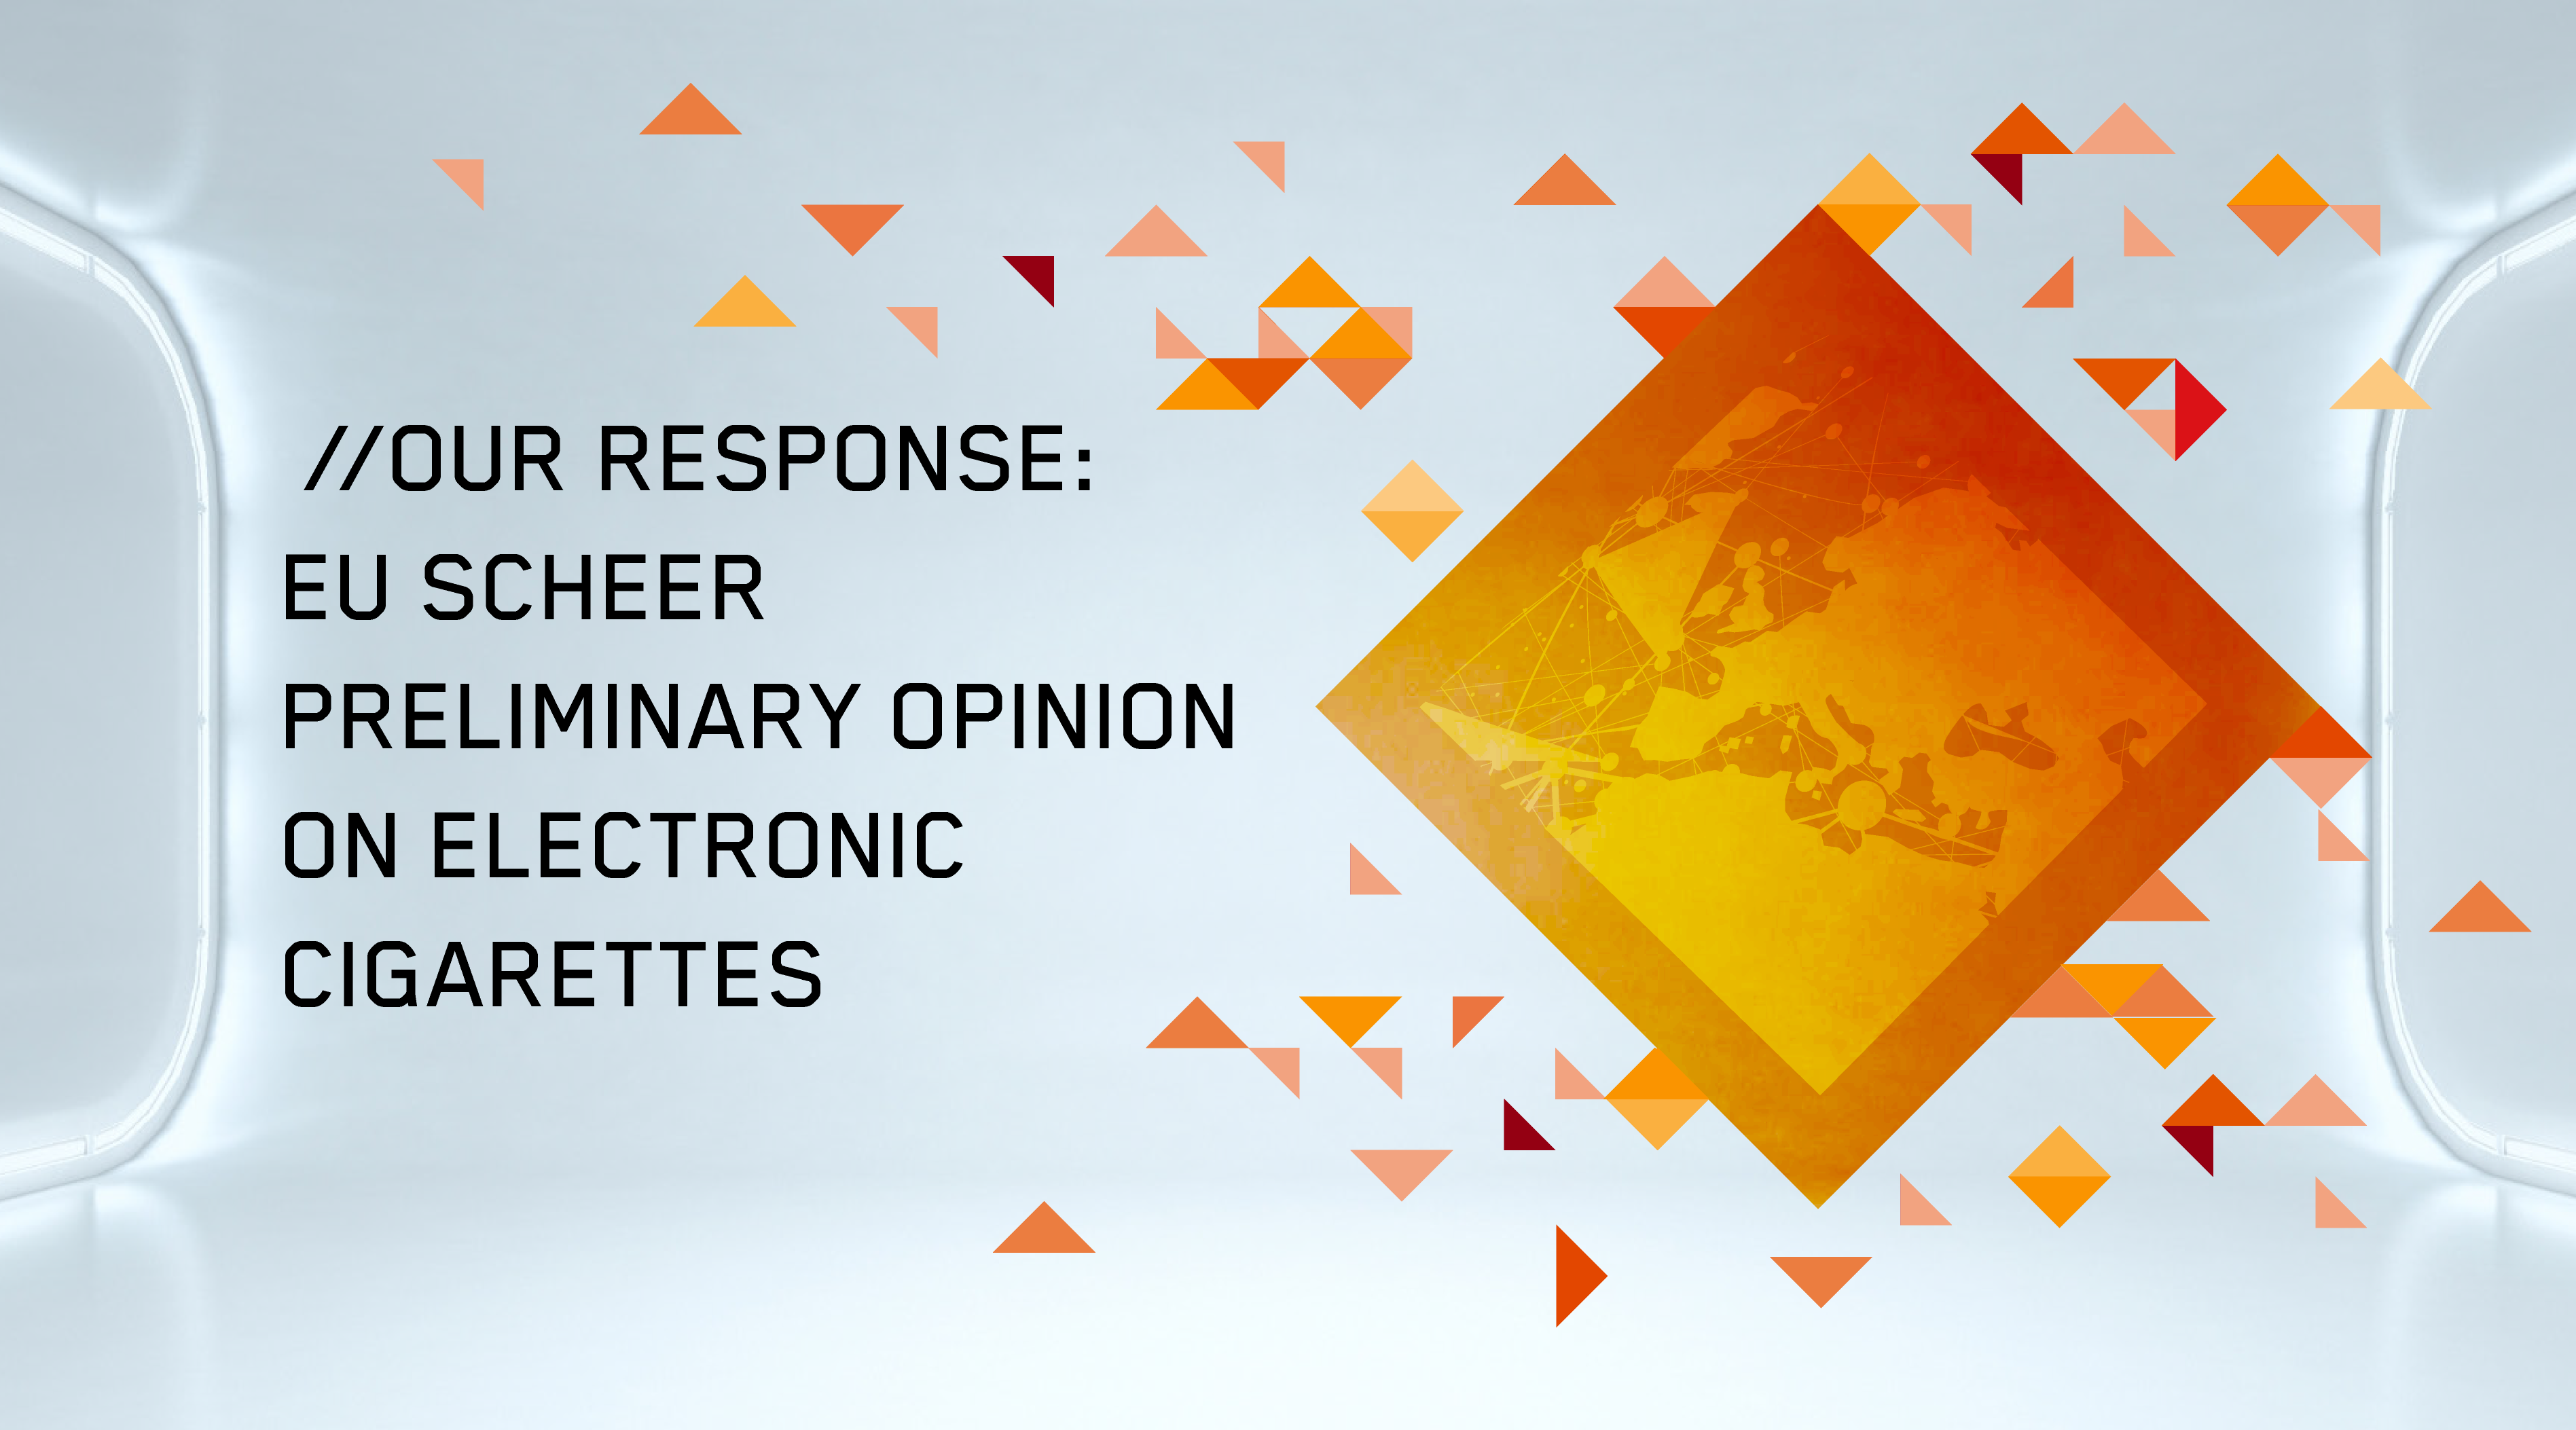 Our Response to the EU SCHEER Preliminary Opinion on Electronic Cigarettes